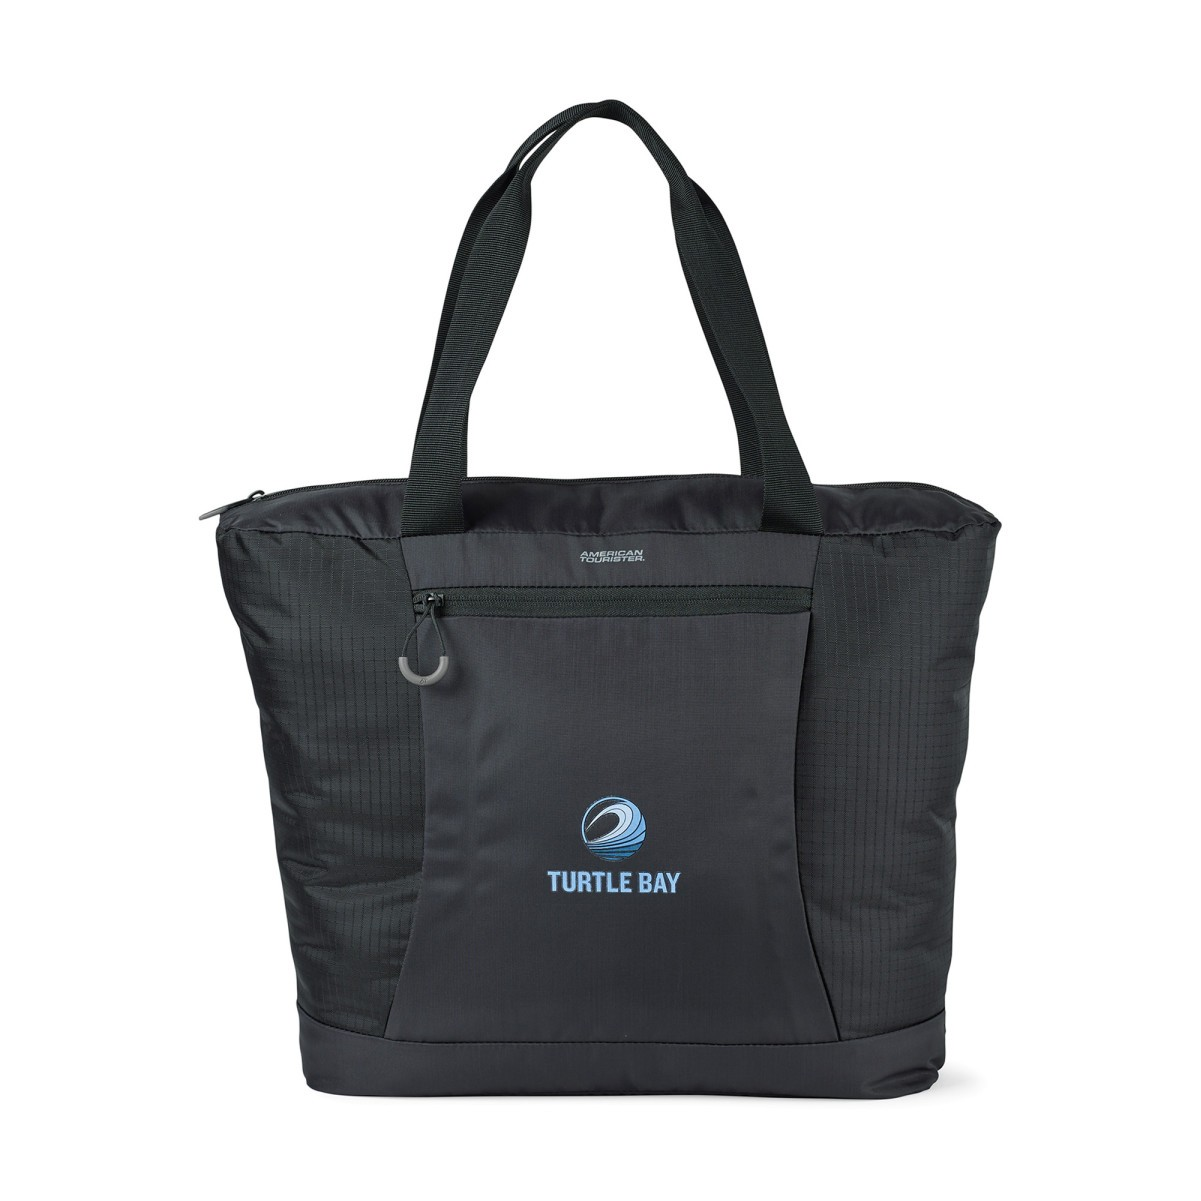 American Tourister Voyager Packable Tote Black